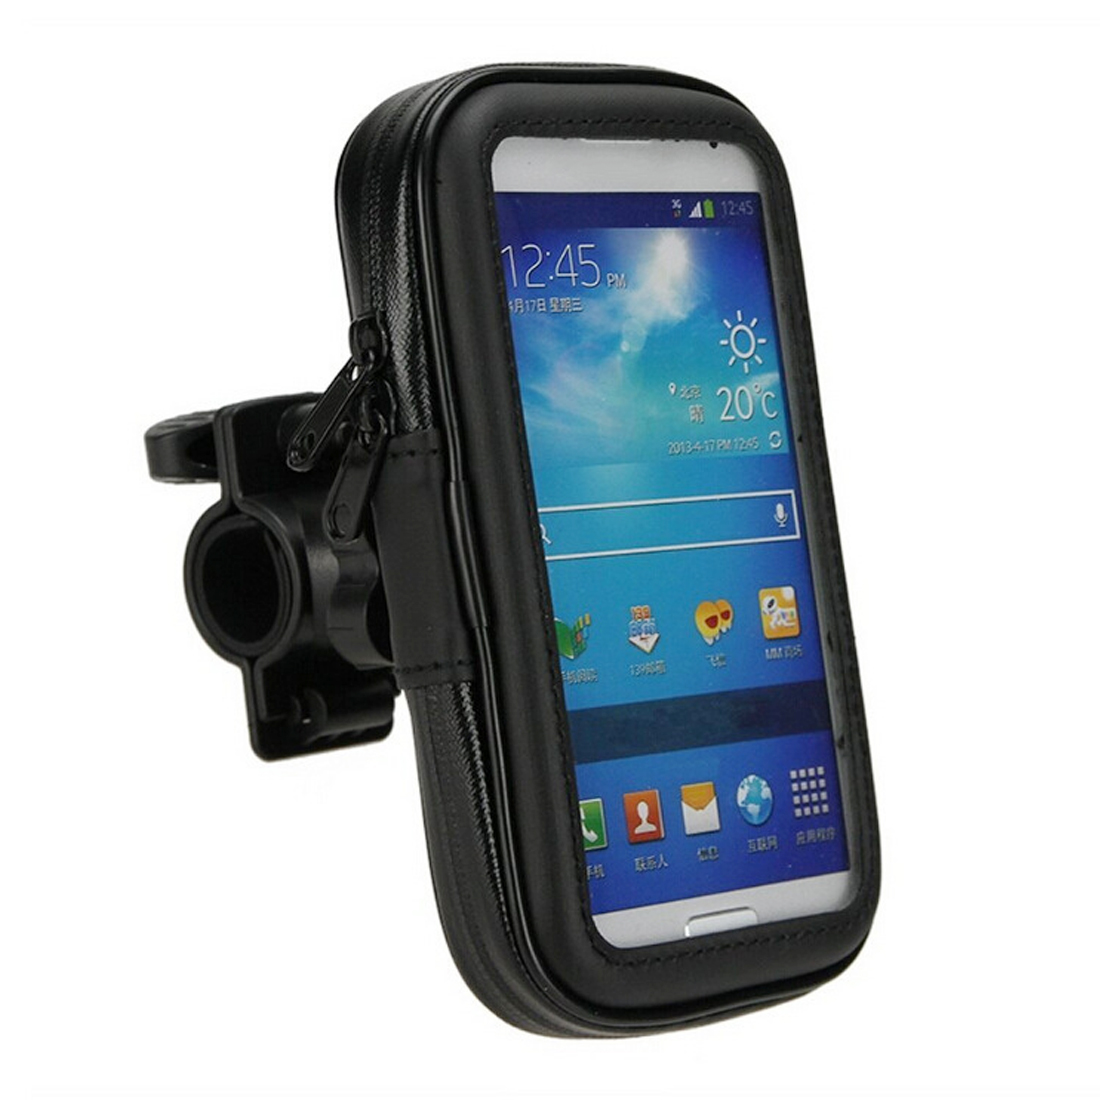 Hot New Bicycle Motorcycle MTB Phone Holder Mobile Stand Support GPS Bike Holder Waterproof Bag Bicycle Accessories